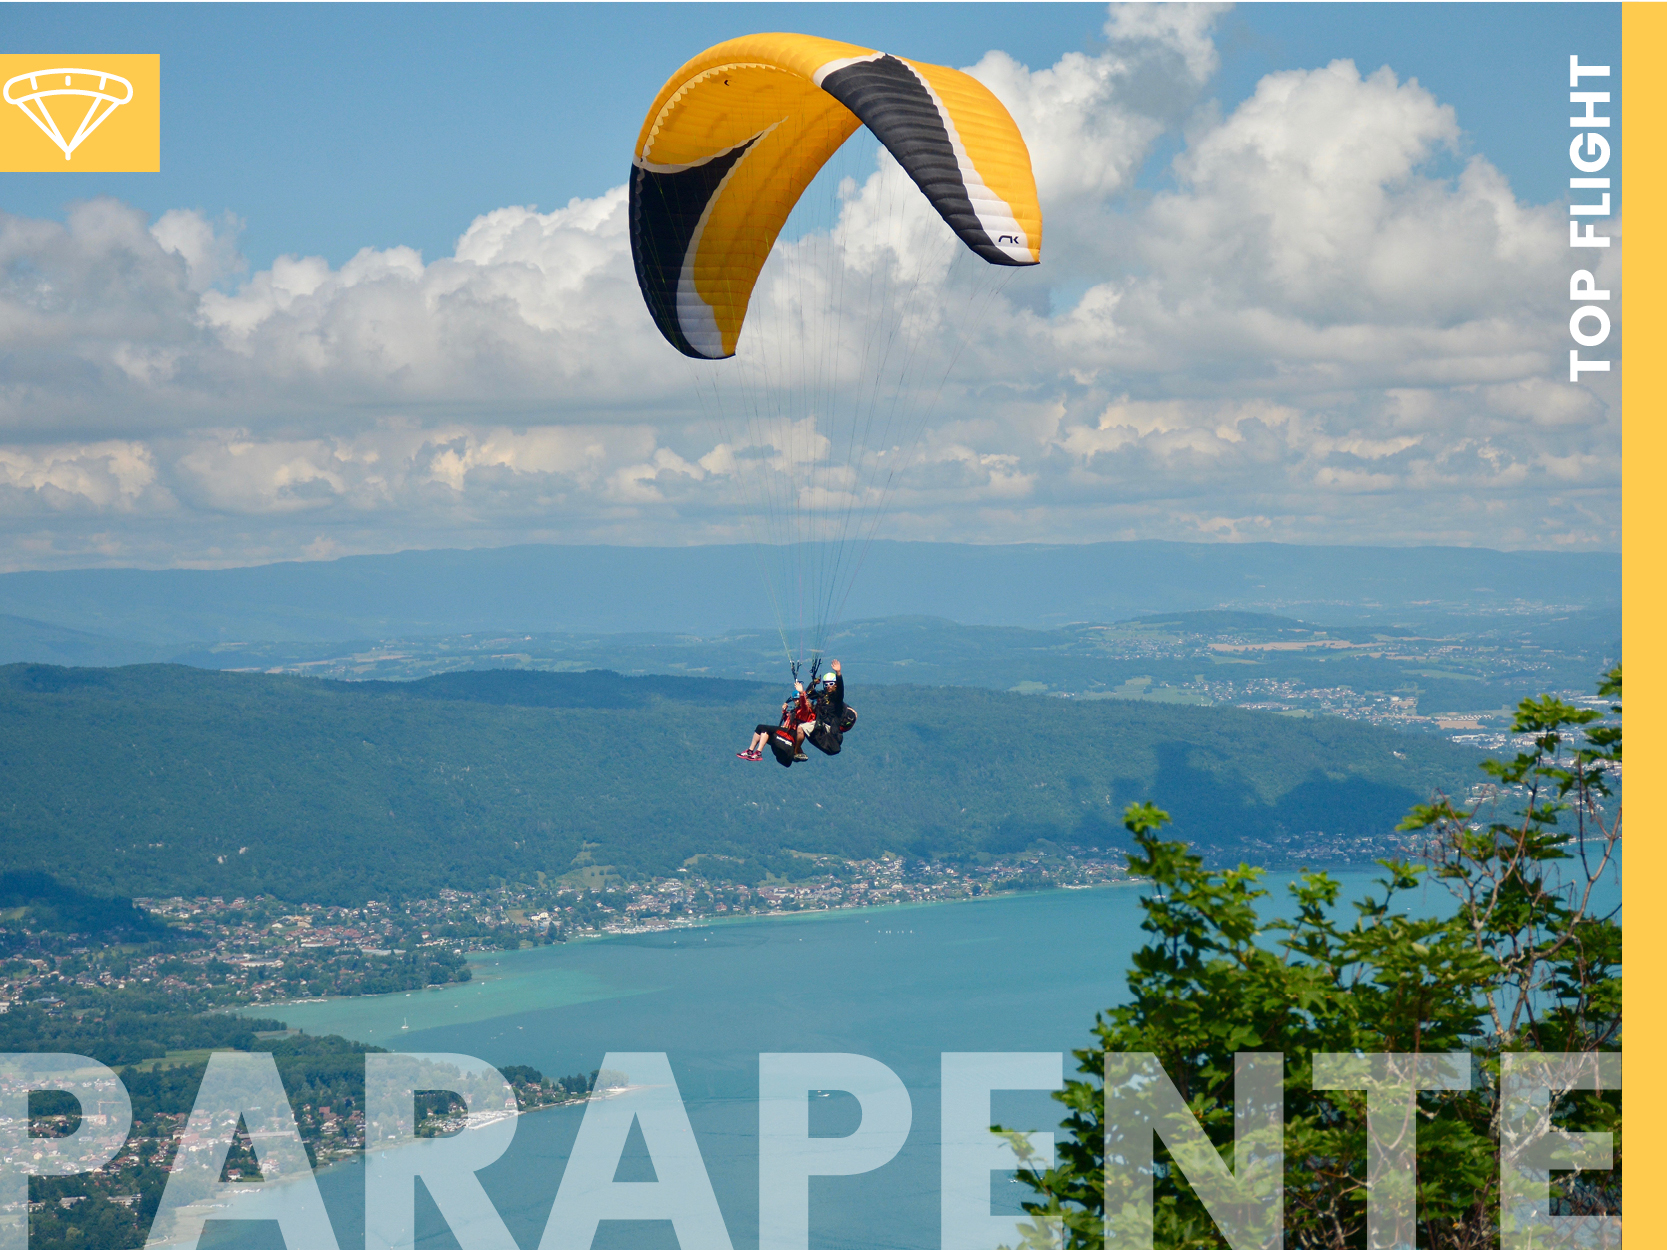 parapente-vol-traverser-lac